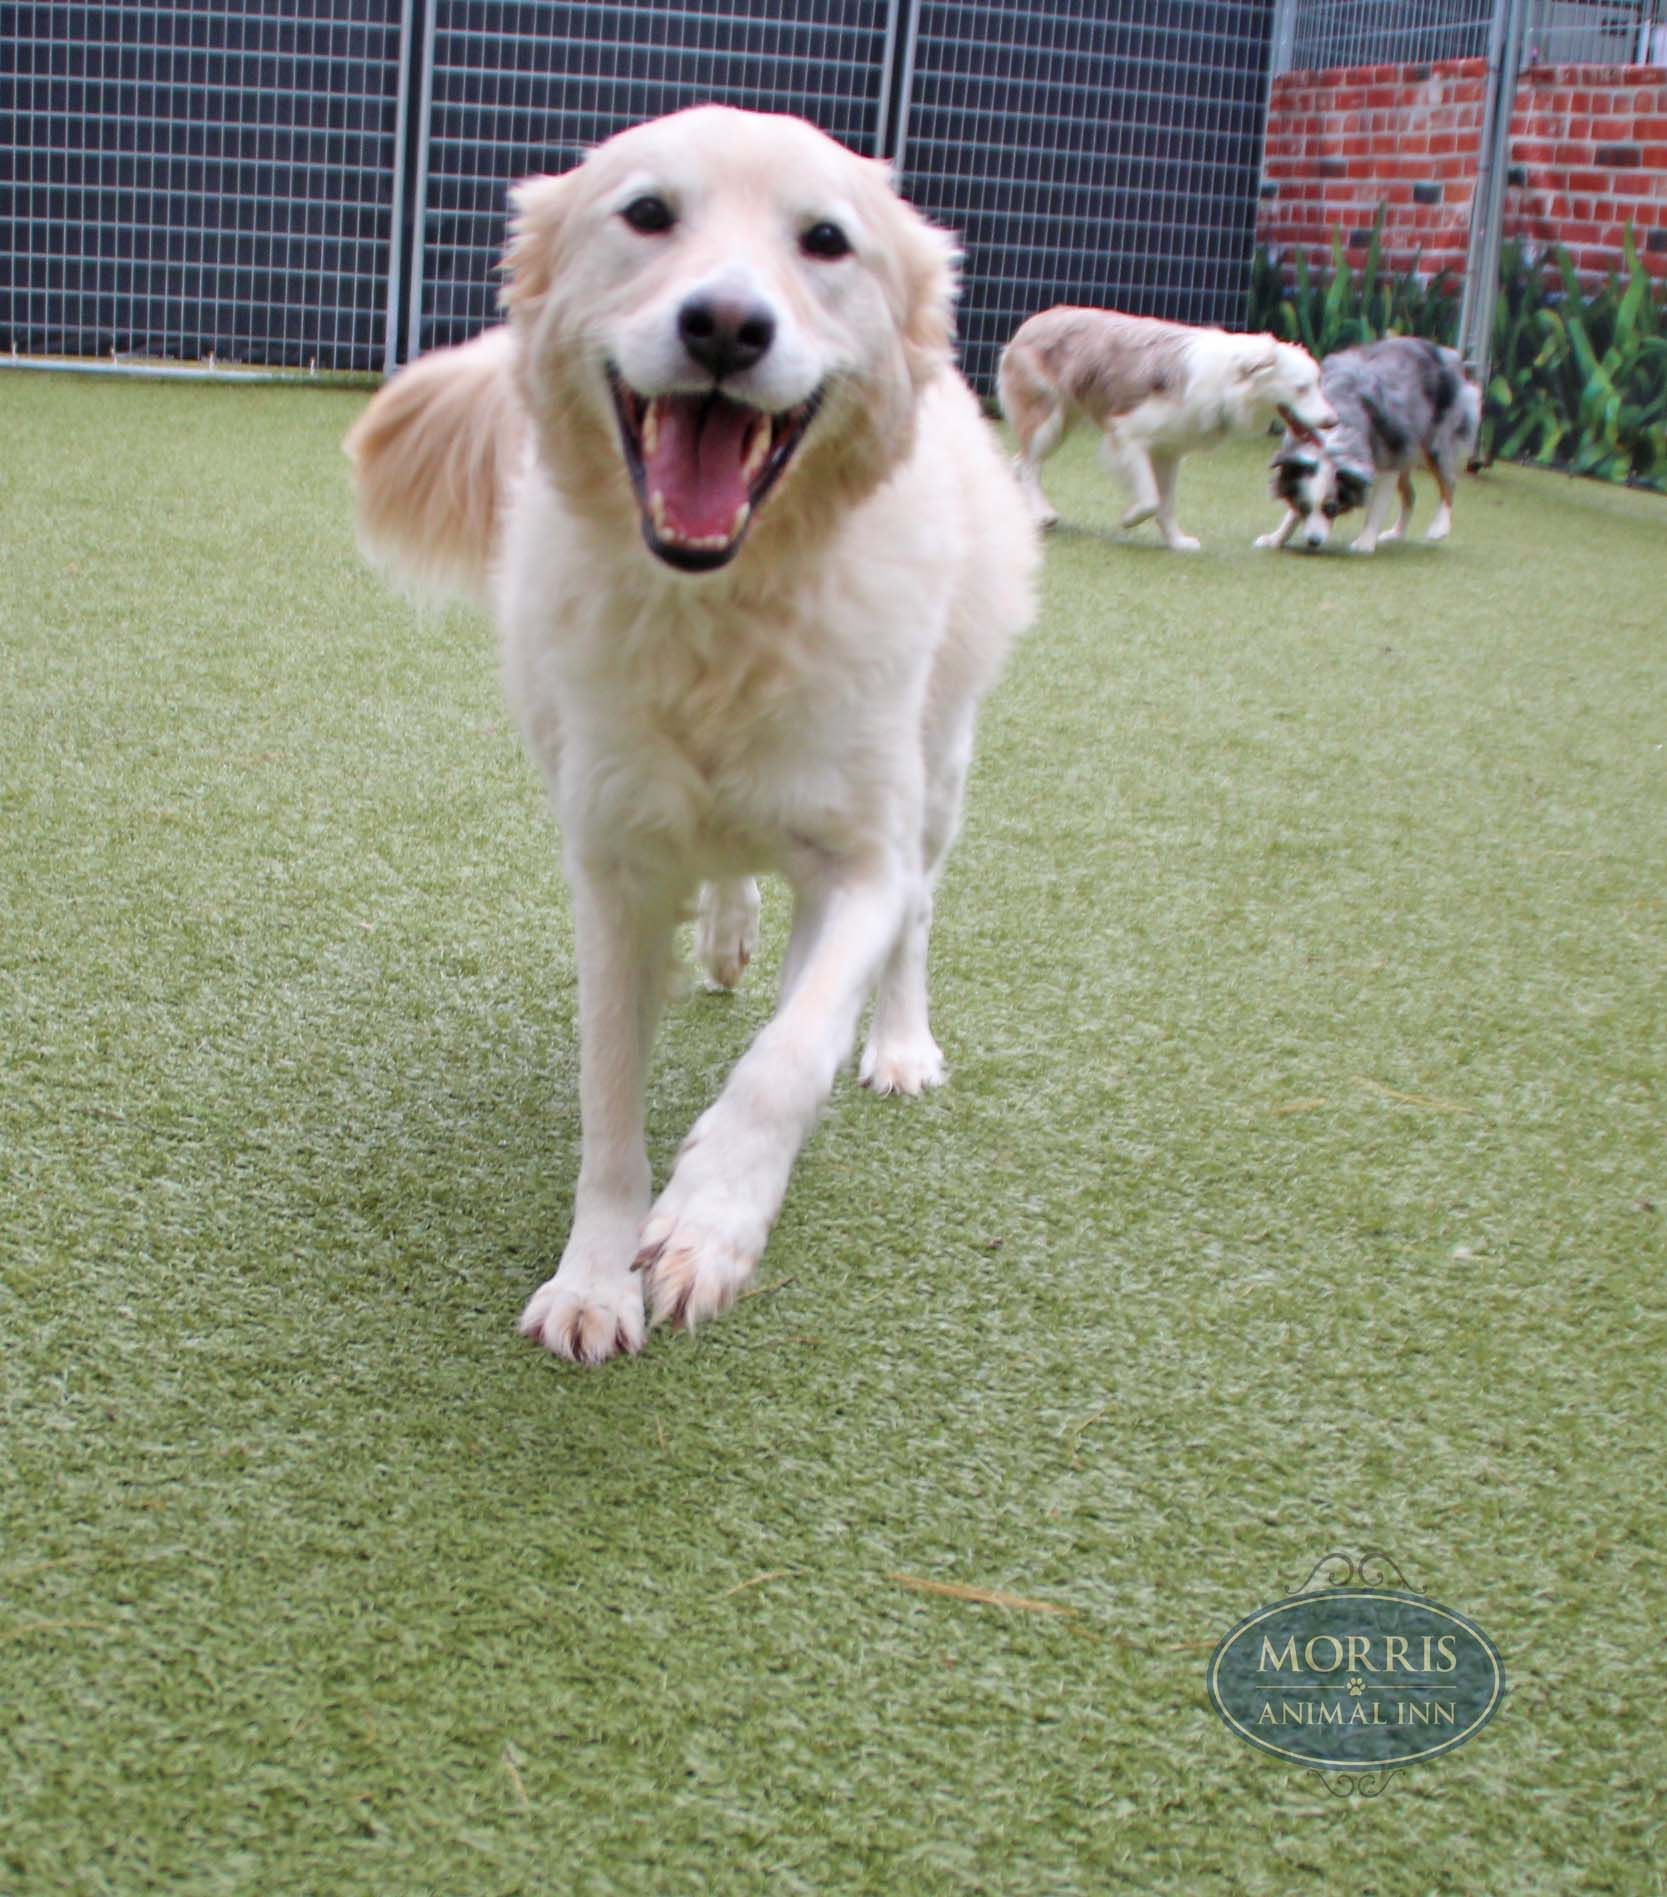 Fiveyearold Zoey is a happy girl during group play. Just